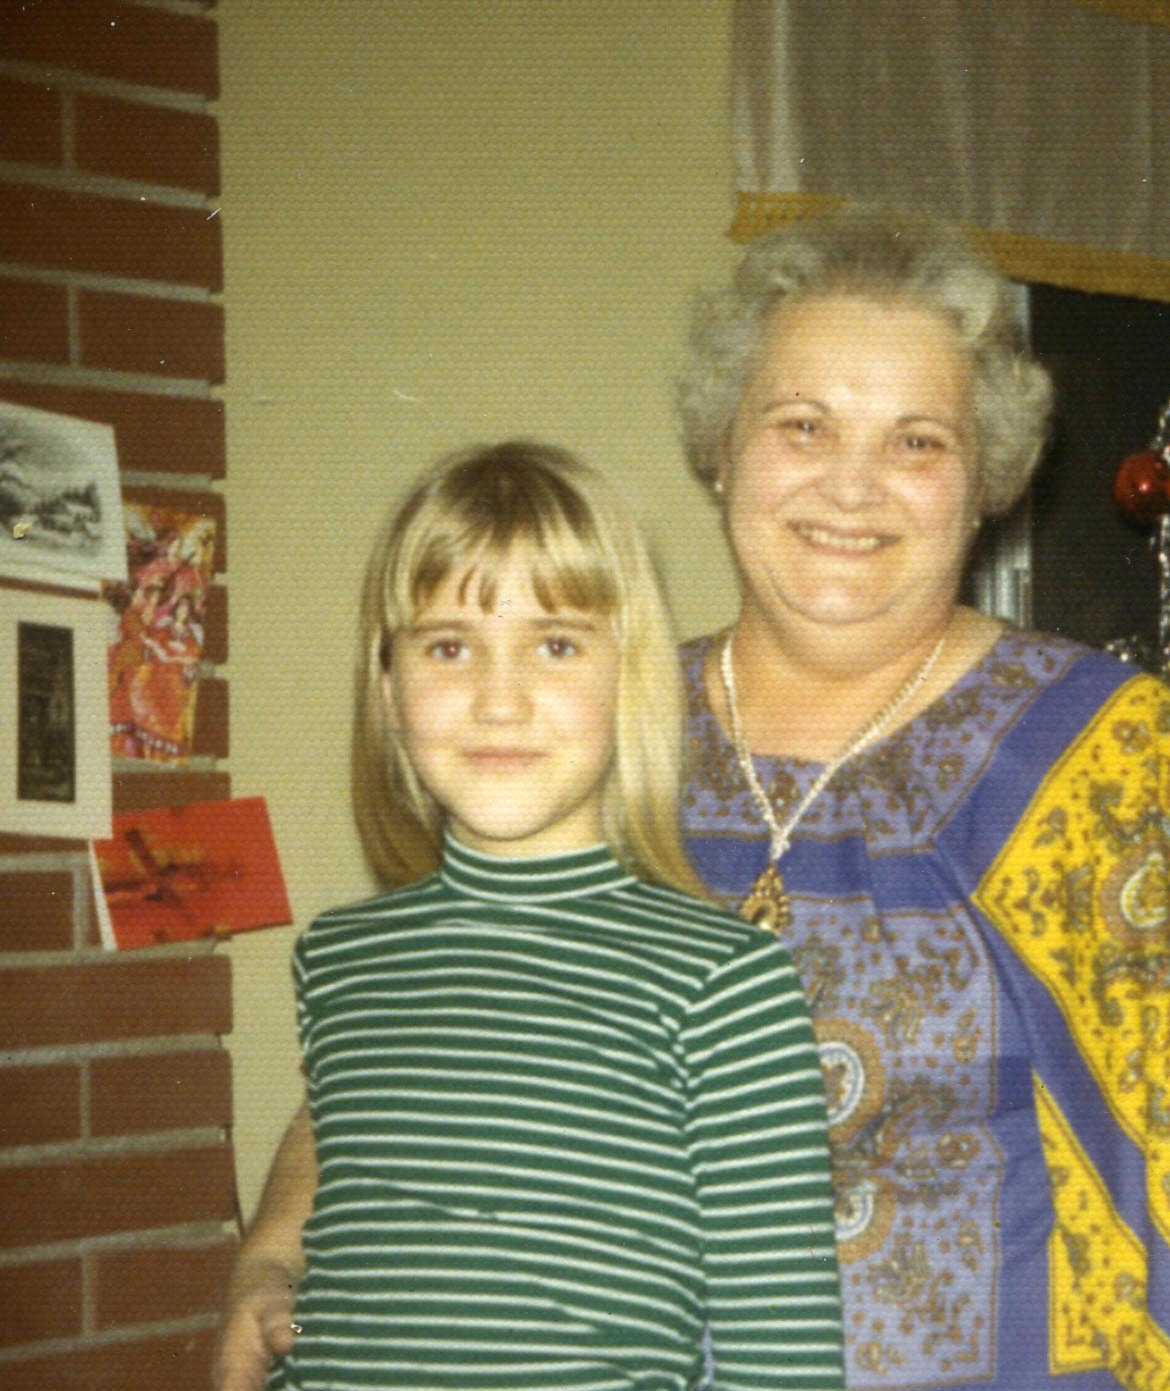 Grandma was instrumental in my pursuing our family history